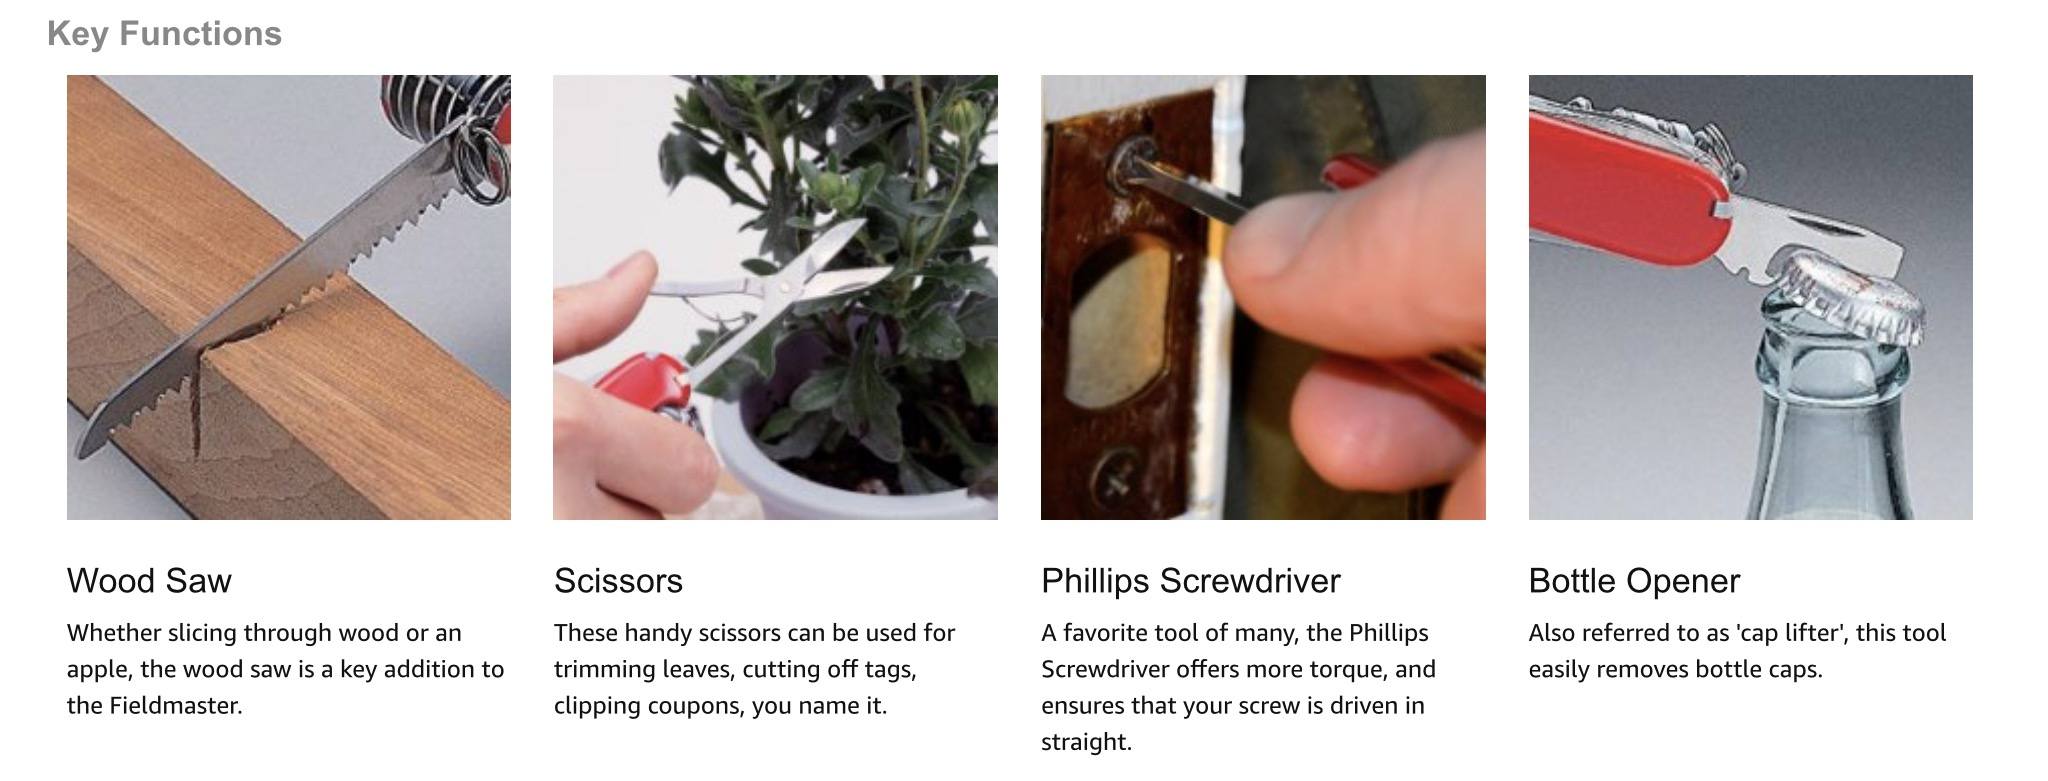 Additional product images showcasing various uses help sell more product. Image: Amazon.